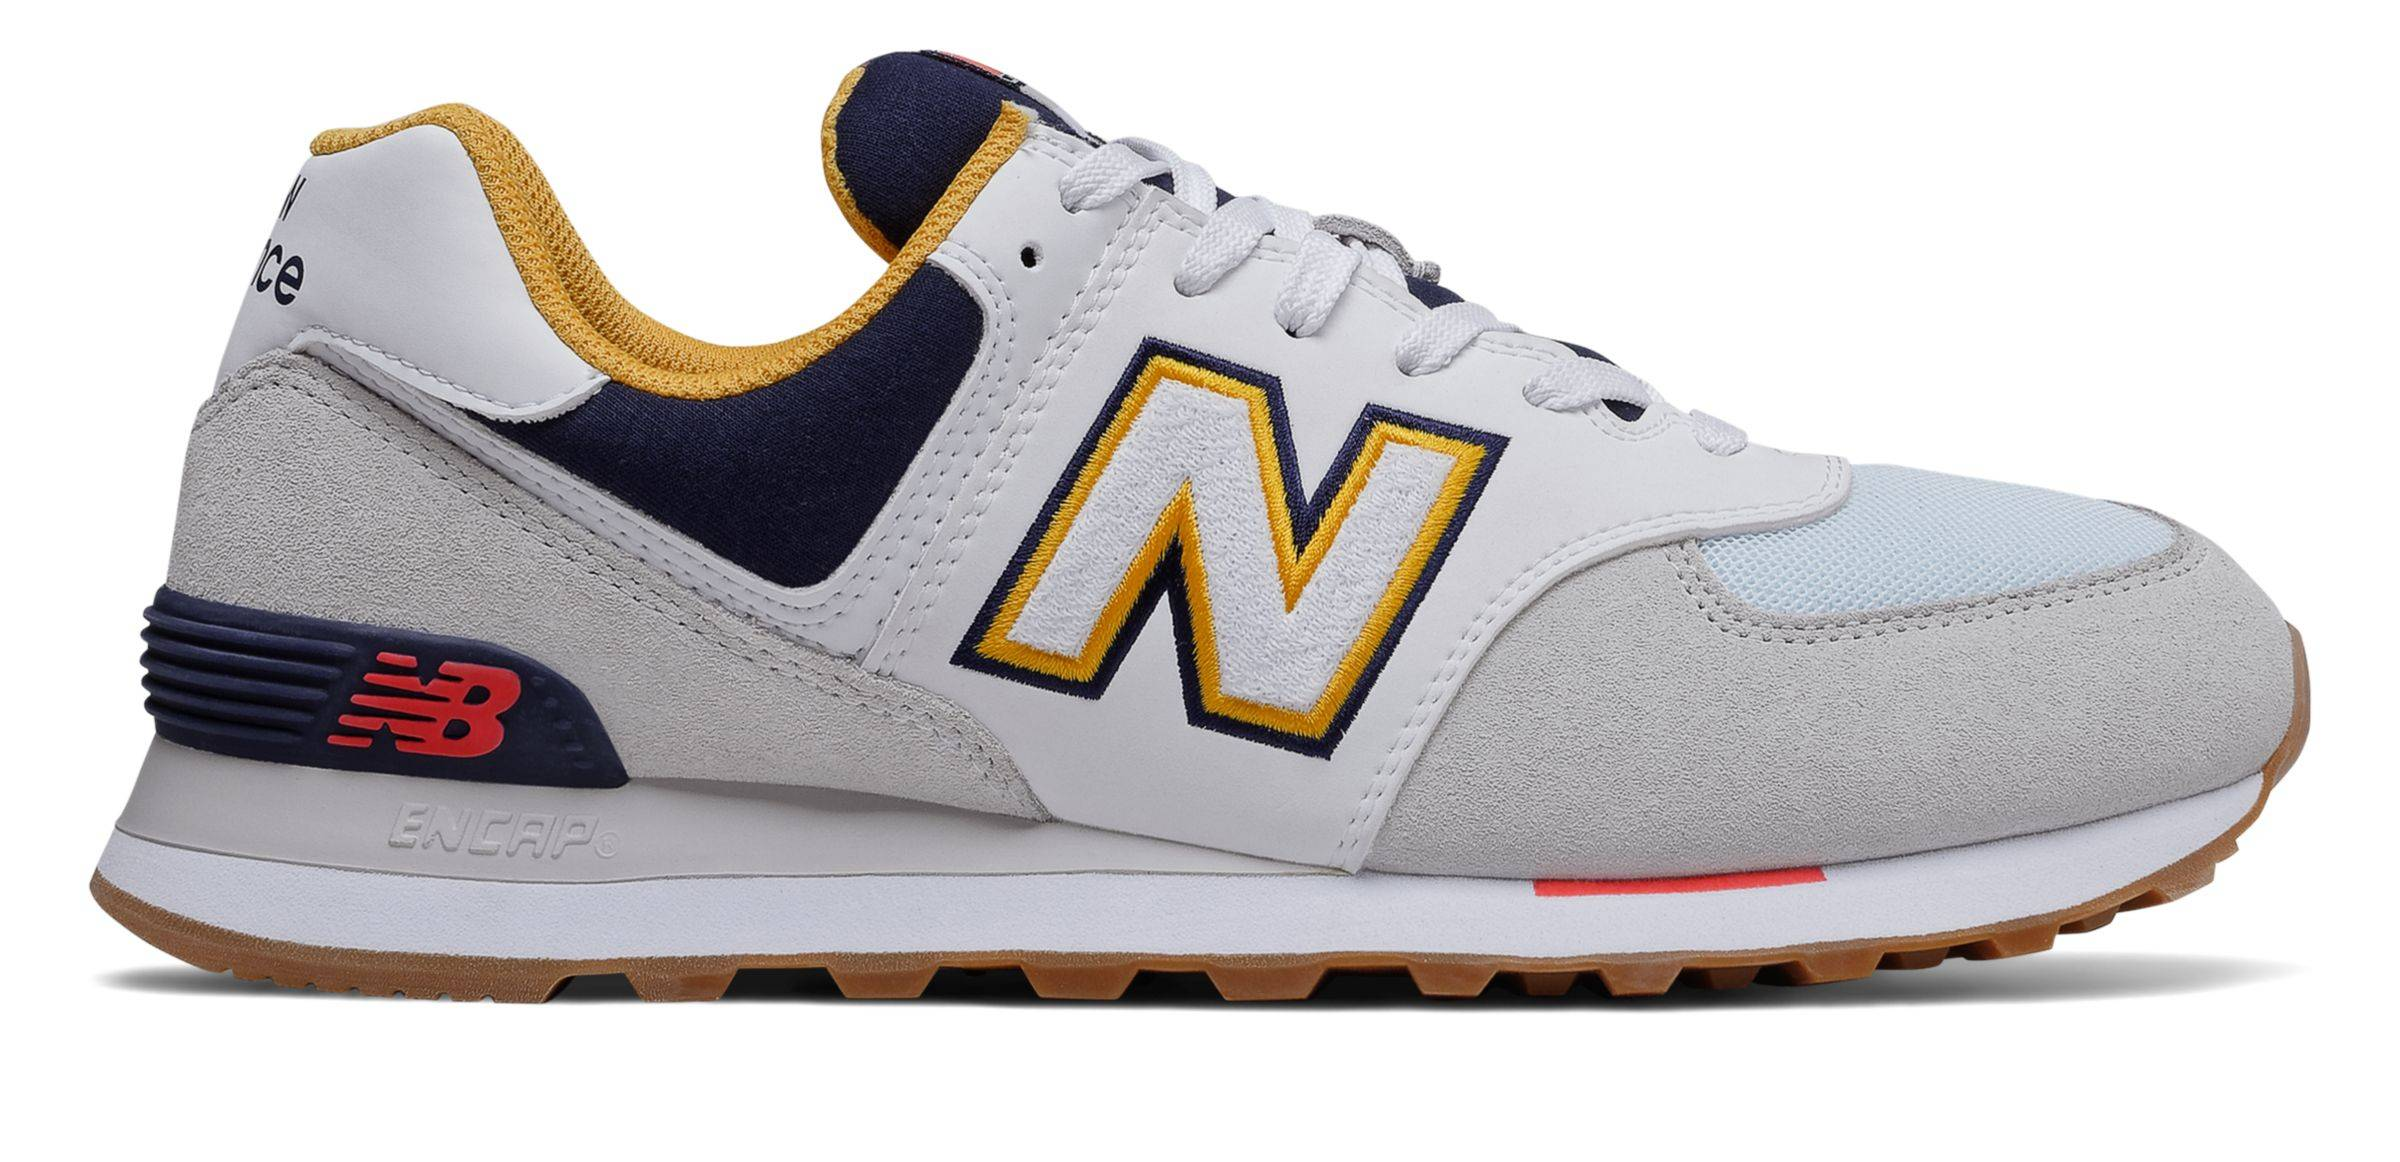 New Balance Men's 574 Shoes Grey with Navy  - Grey with Navy - Size: 9